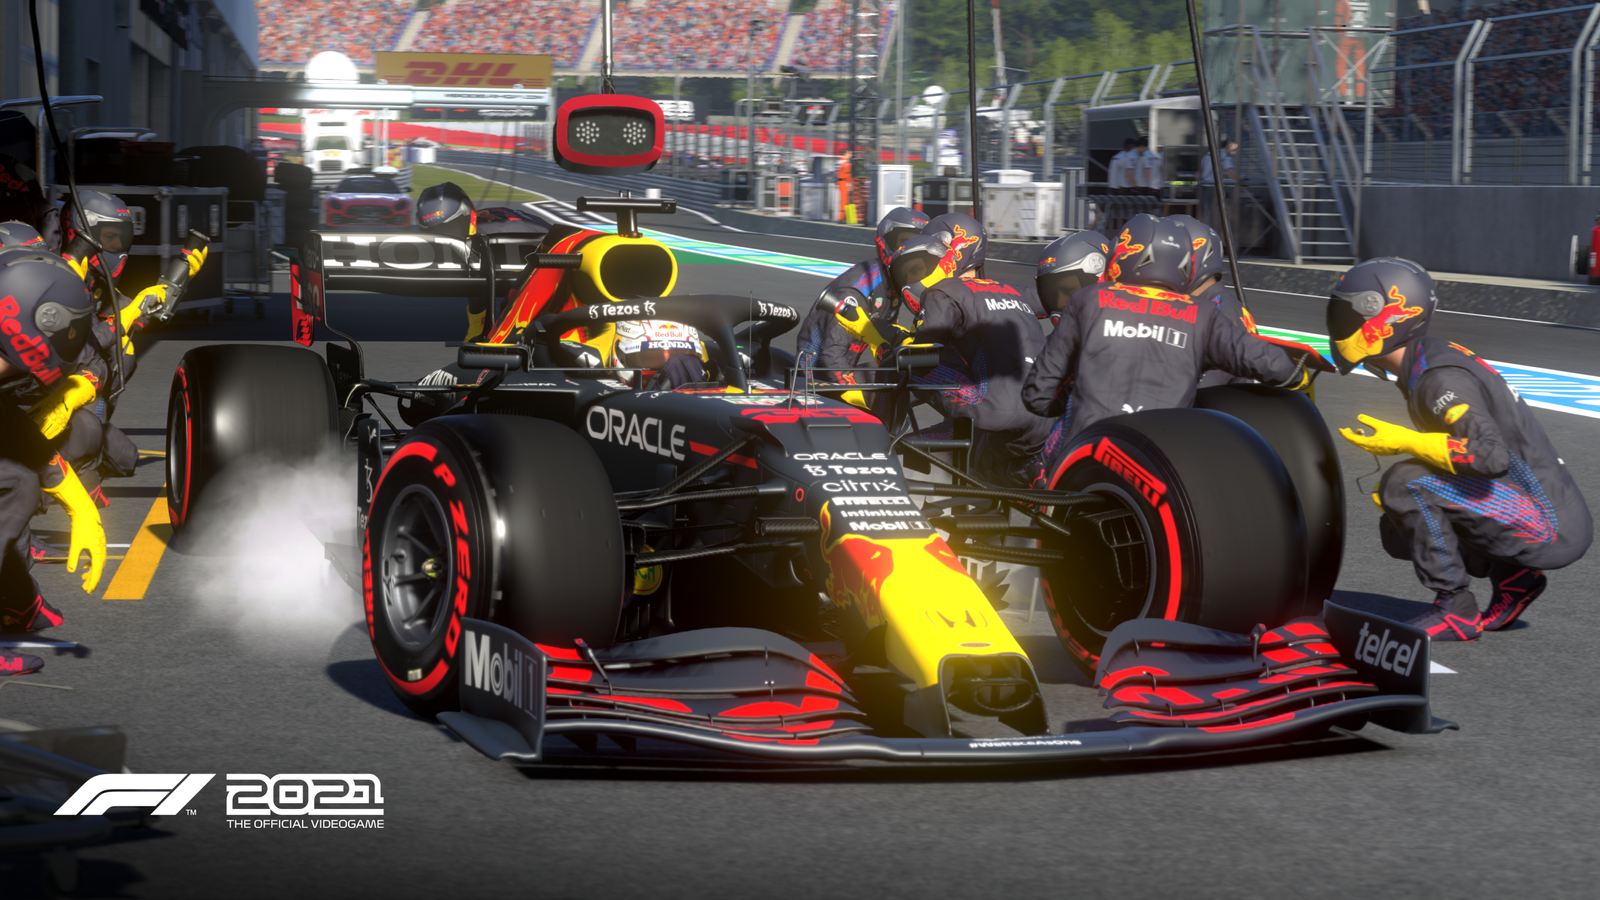 F1 2021 review: New EA game adds a new dimension to a format that has relied entirely on fast cars